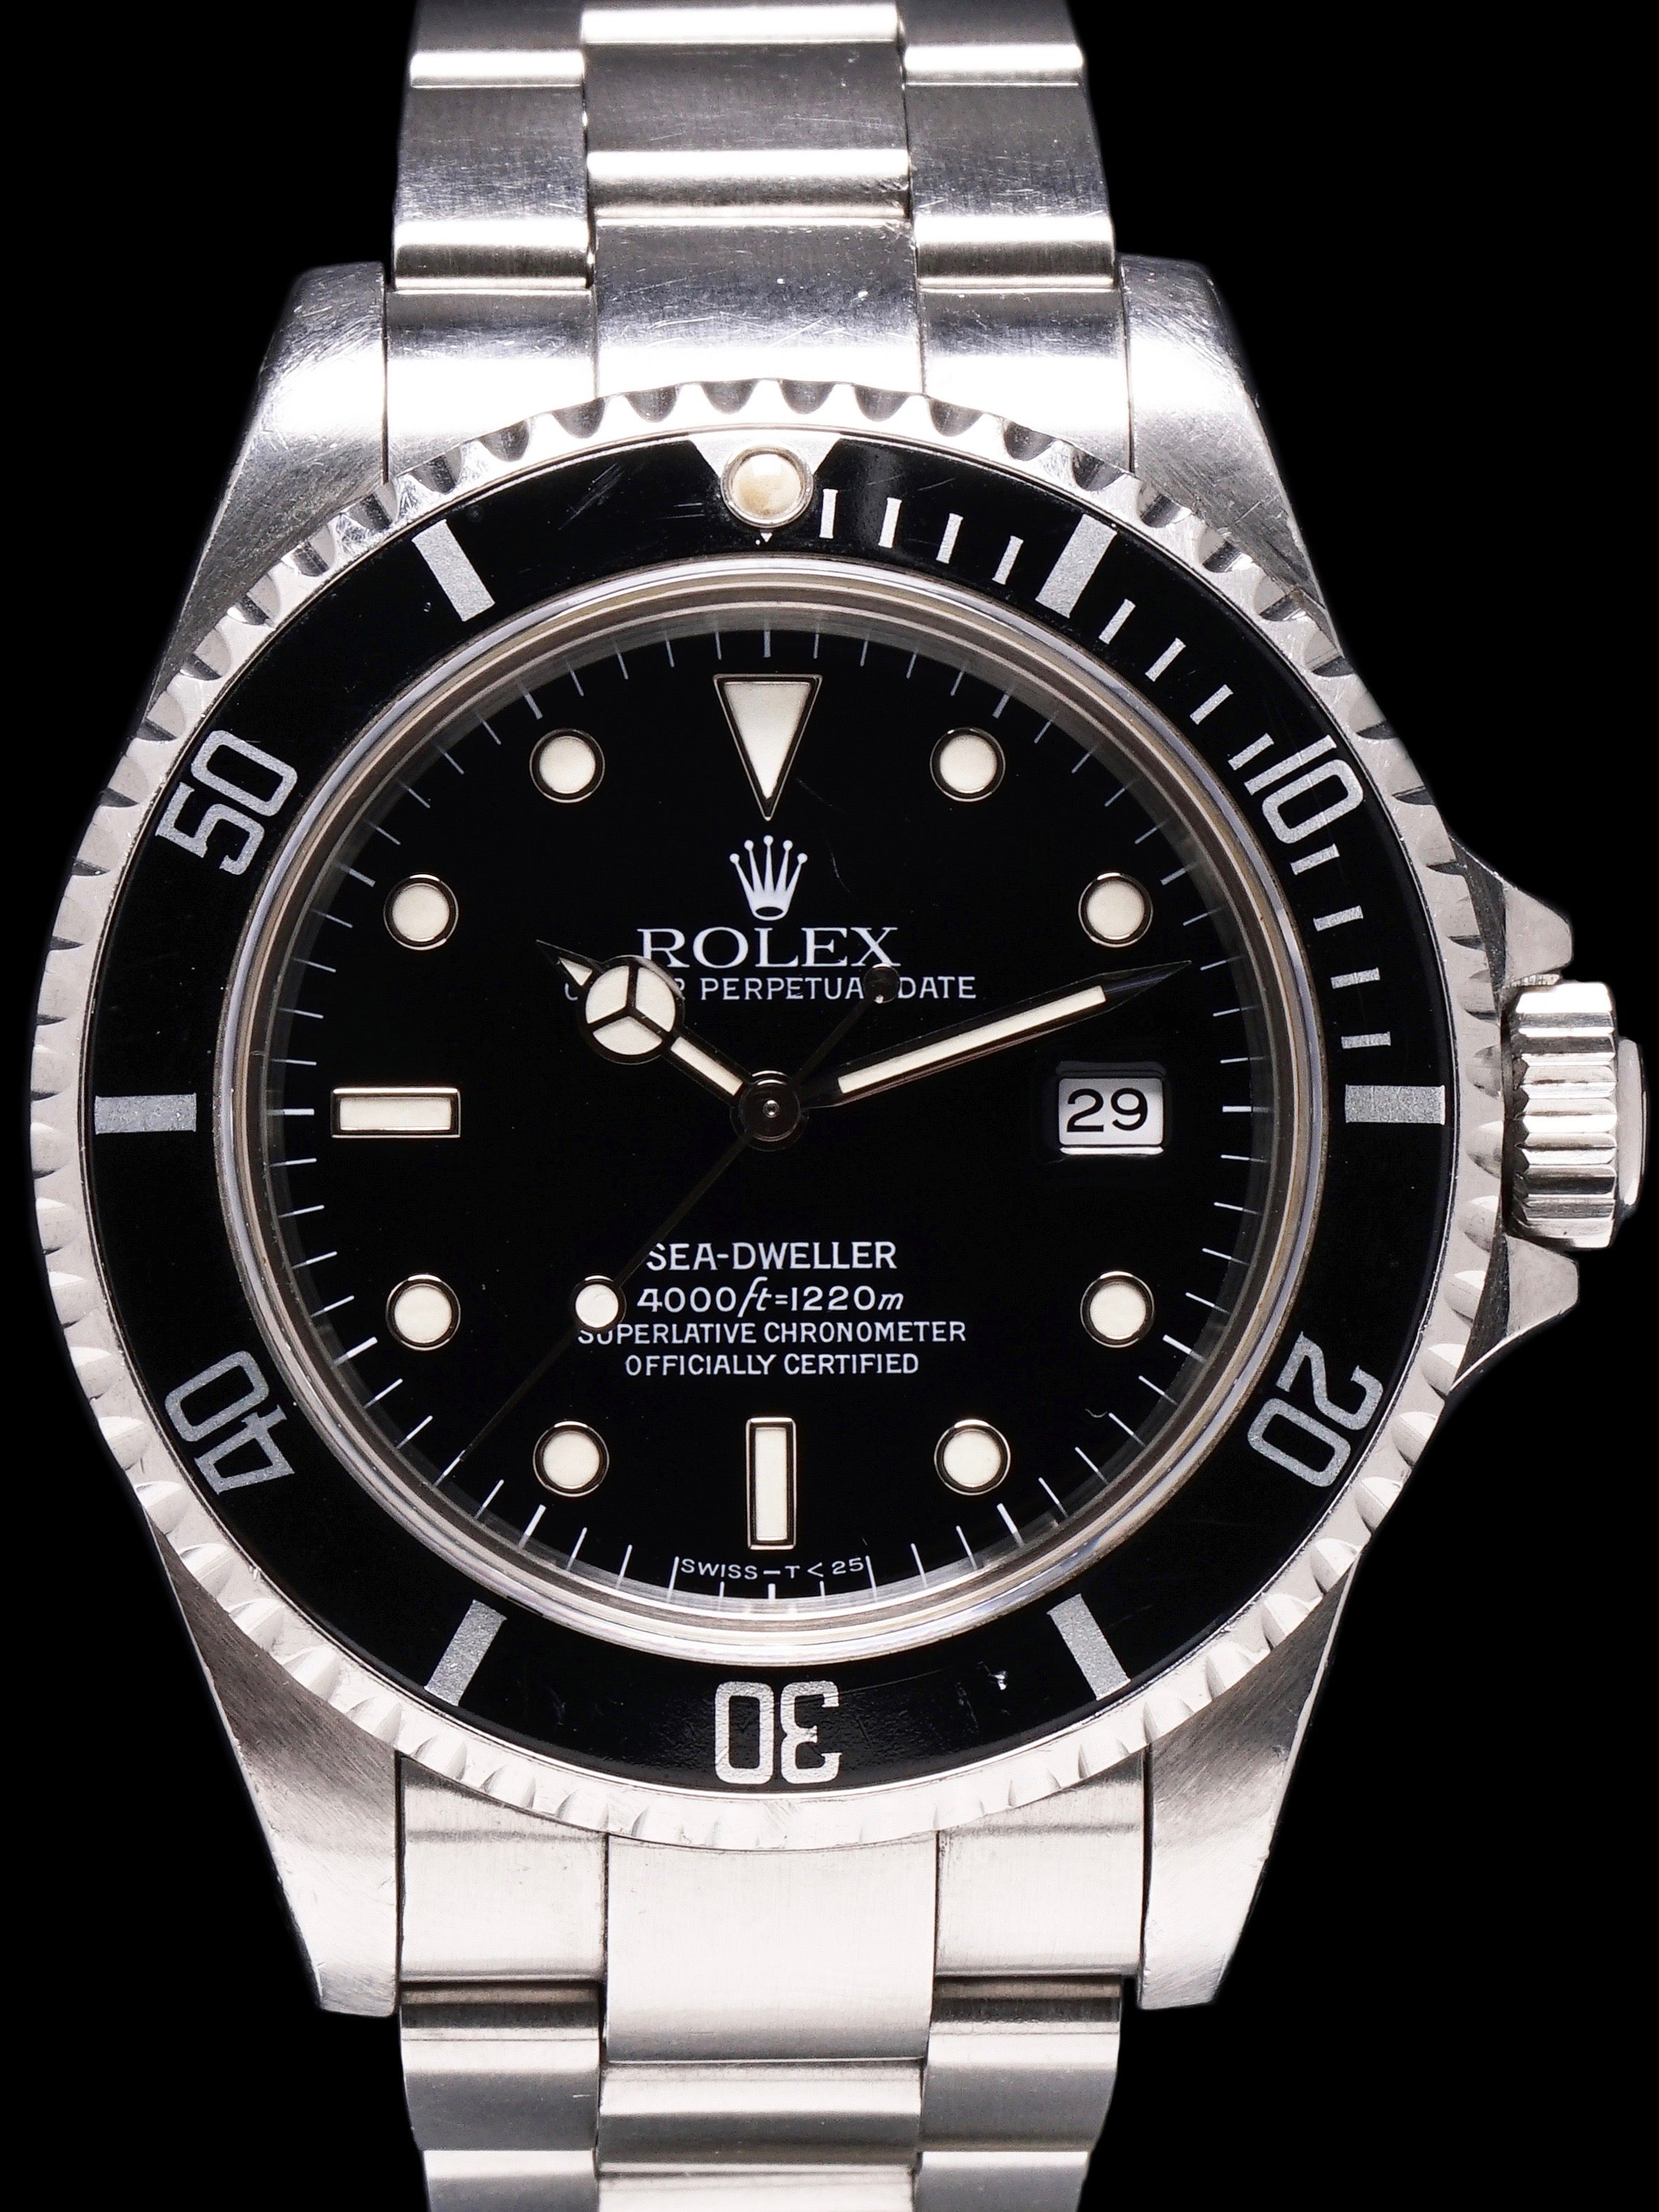 *Unpolished* 1991 Rolex Sea-Dweller (Ref. 16600)